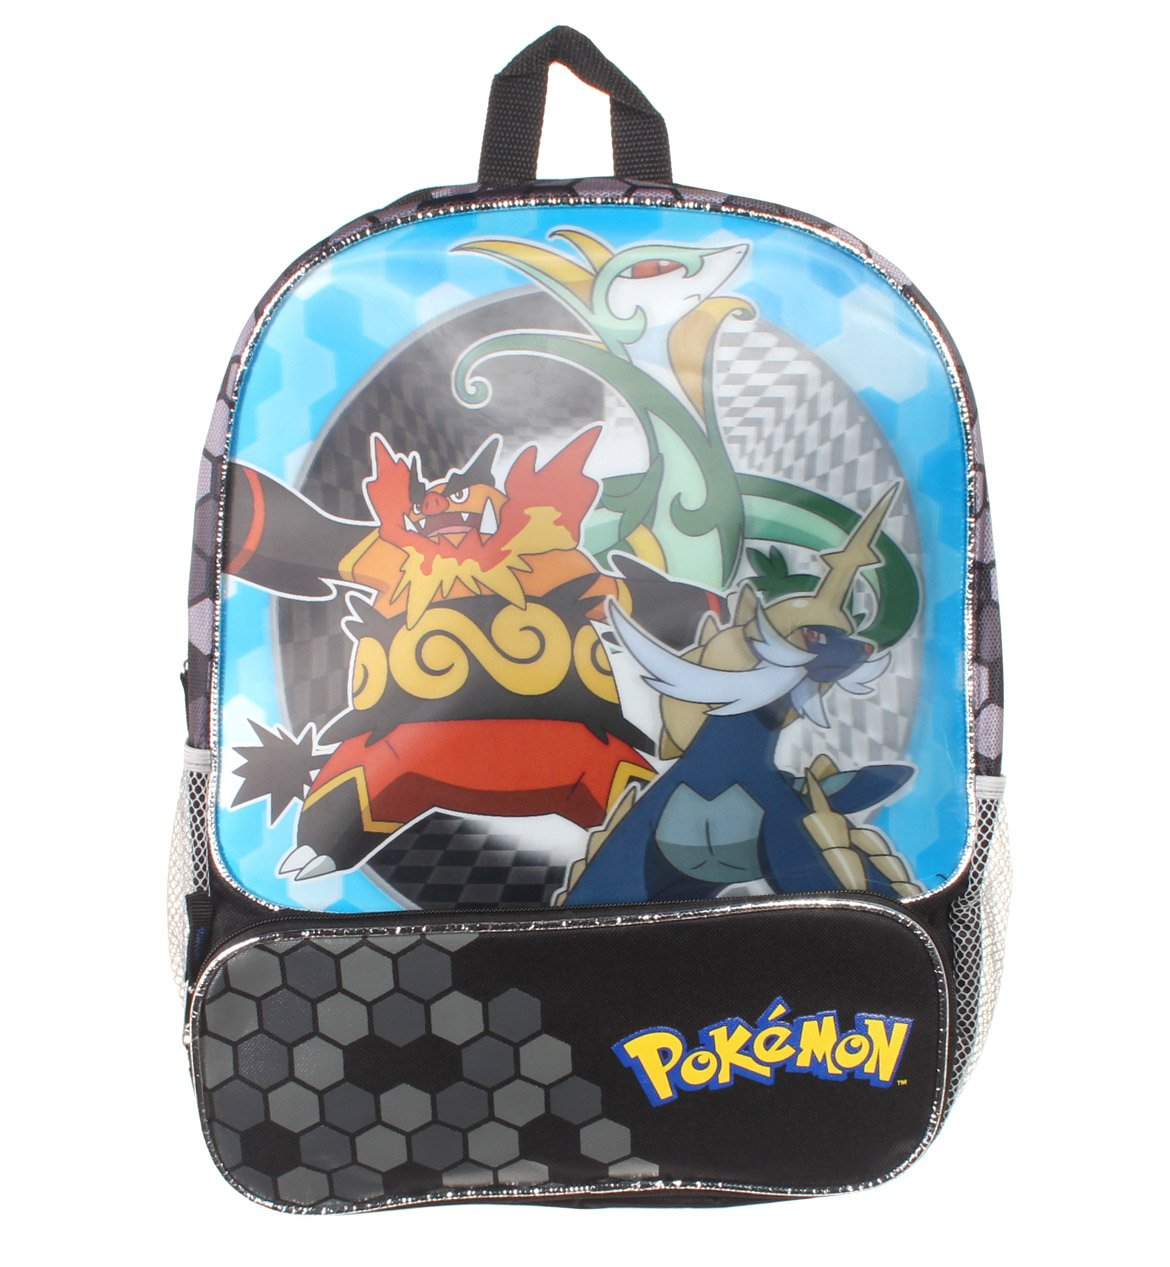 7077f46bbd68 pokemon backpack walmart Sale